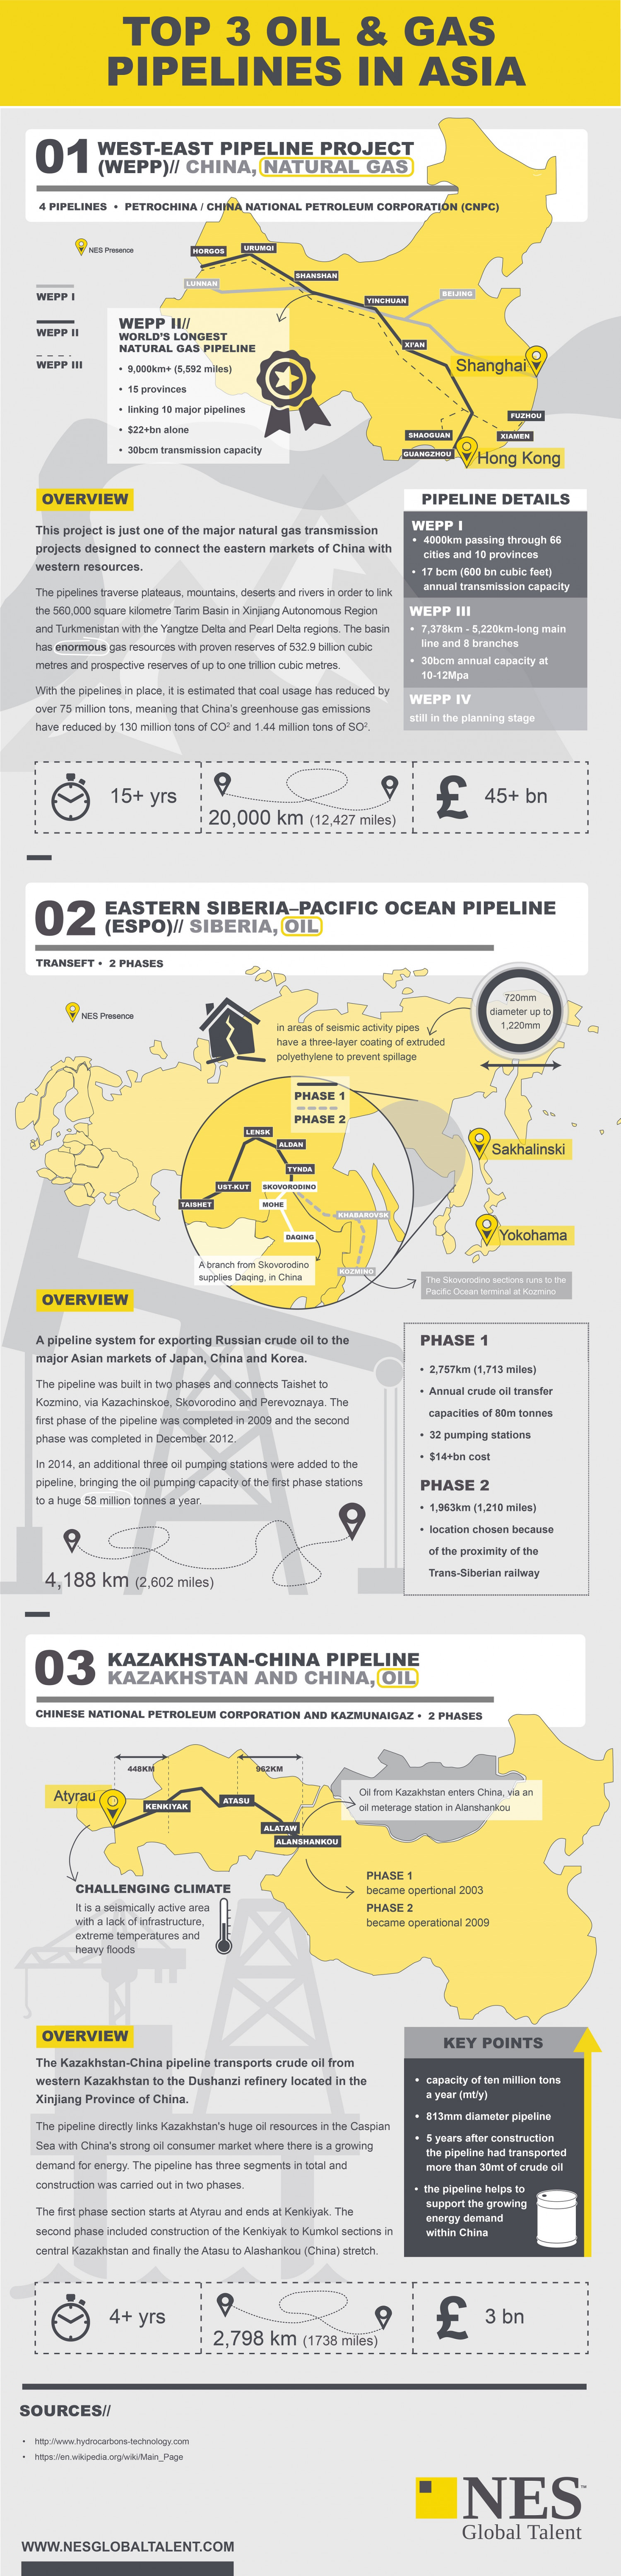 Top 3 Oil & Gas Pipelines in Asia Infographic